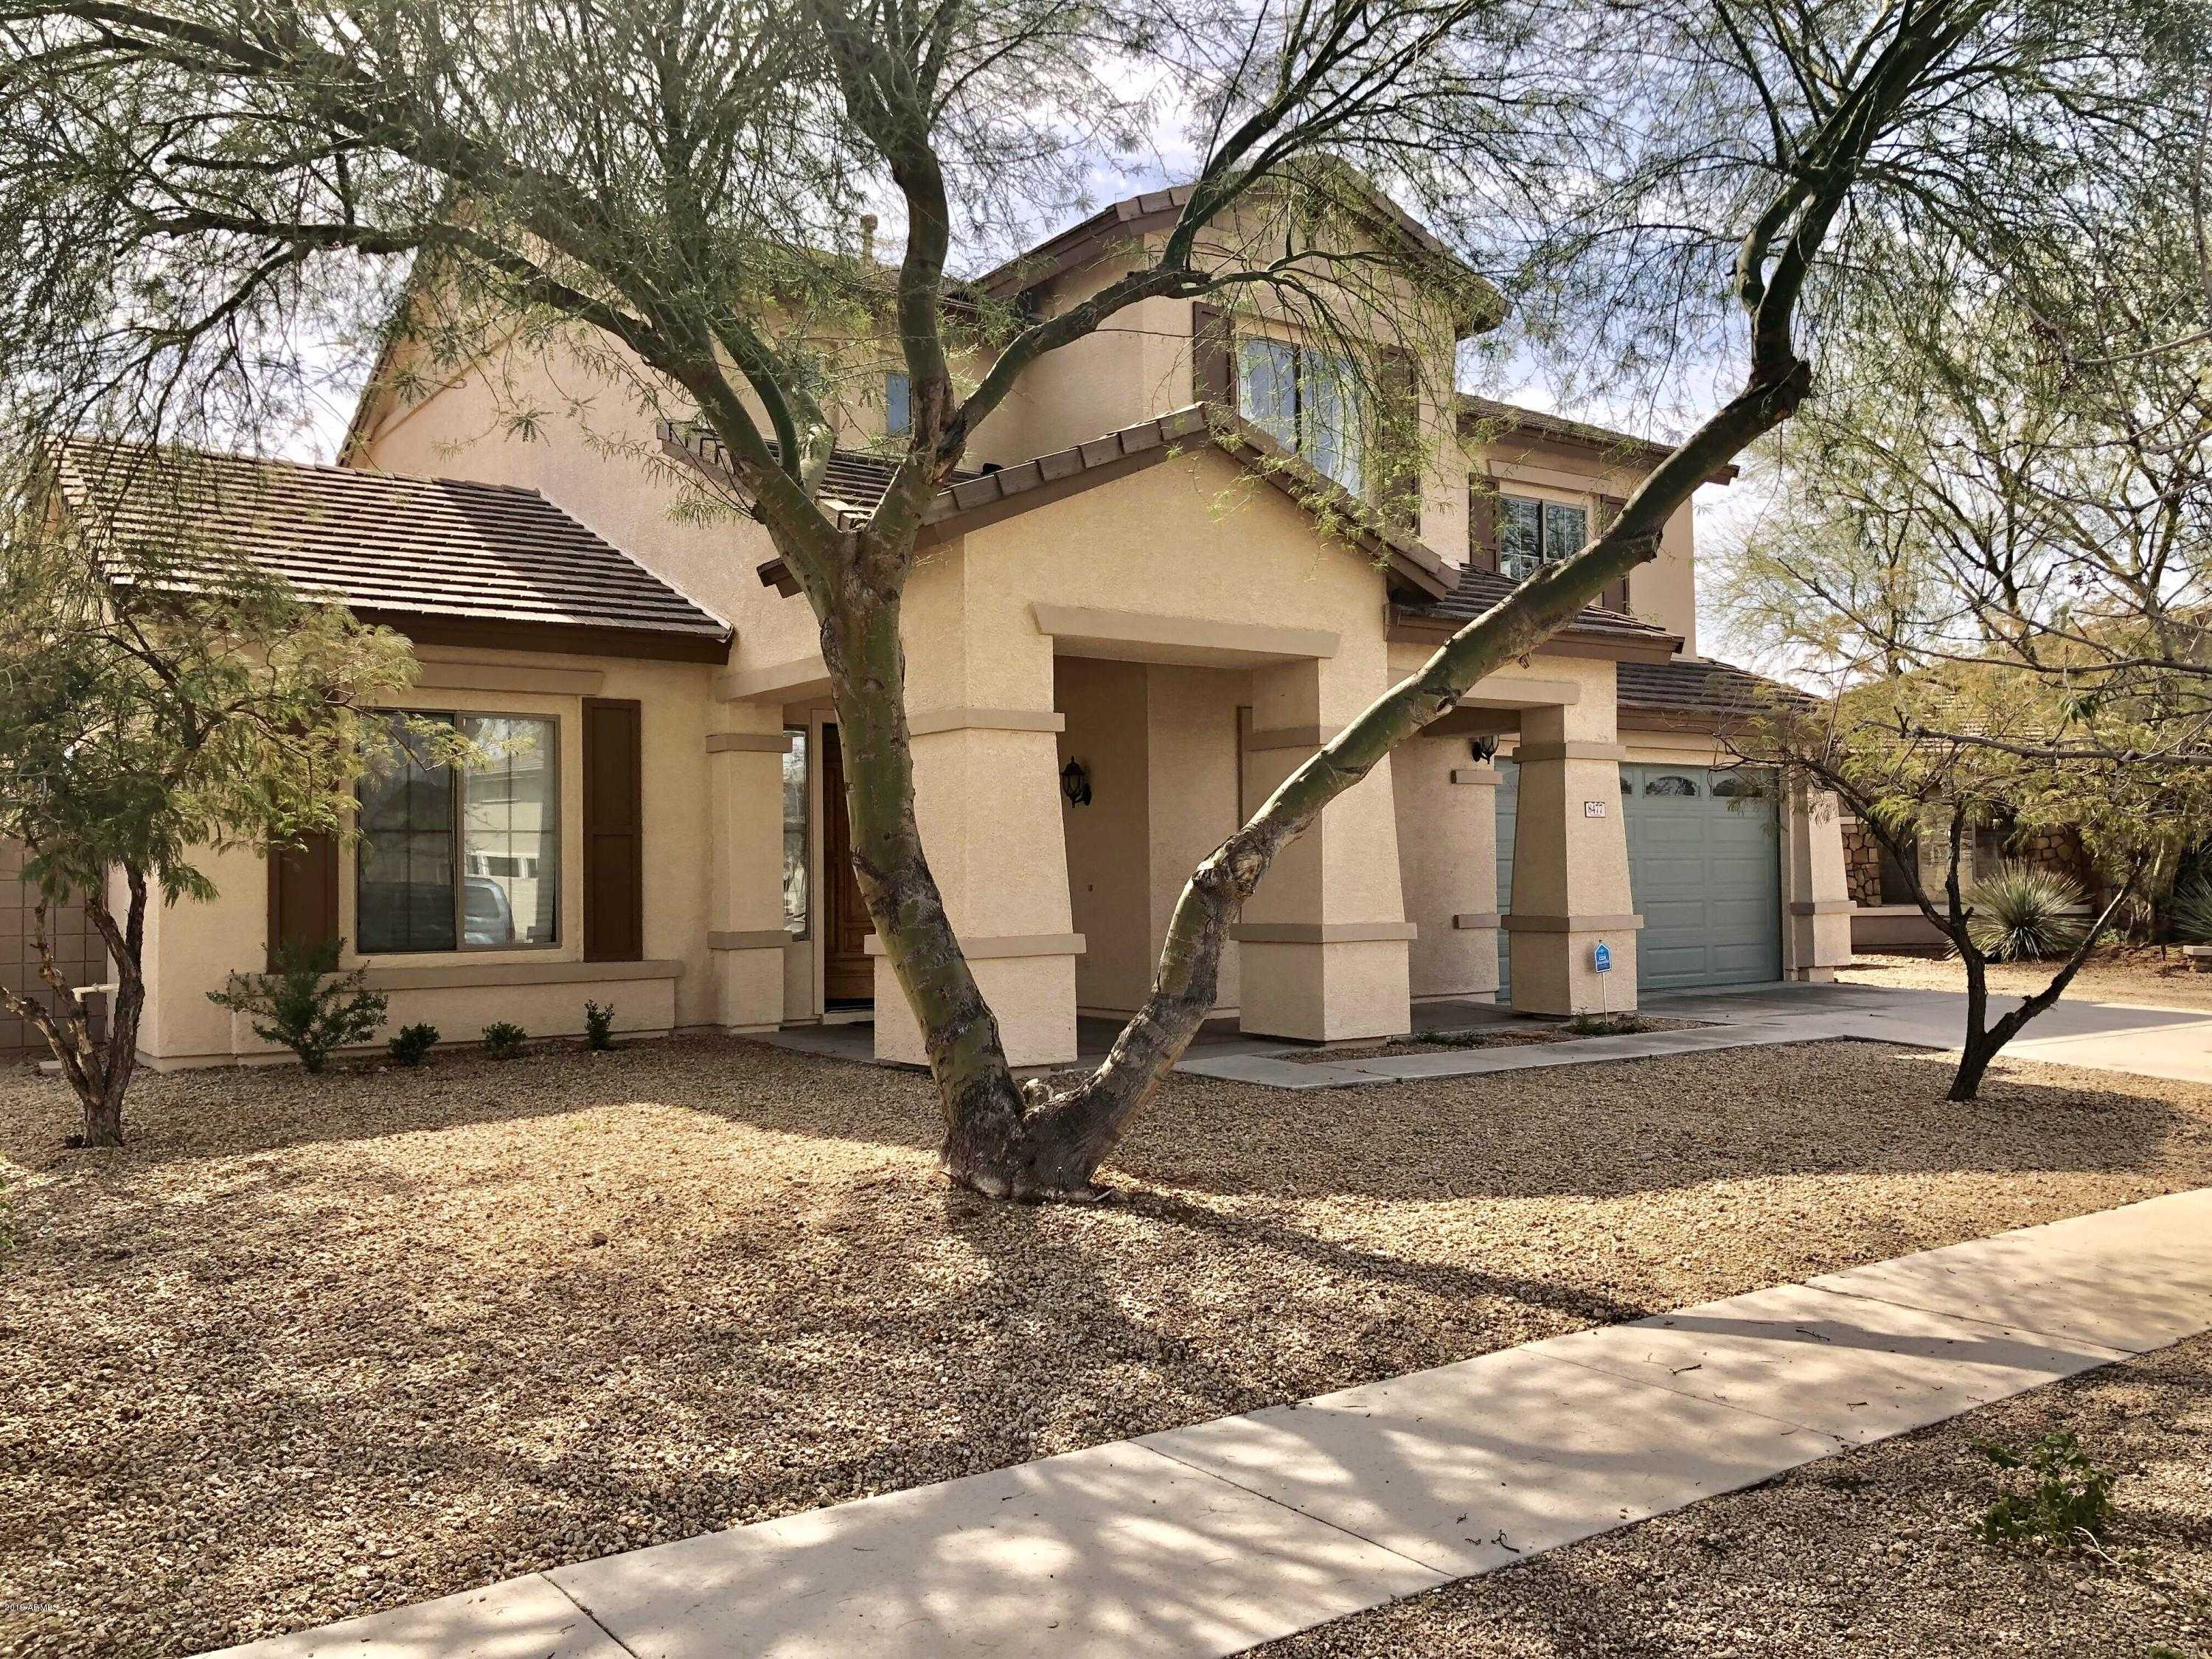 $329,500 - 5Br/3Ba - Home for Sale in Rovey Farm Estates South, Glendale